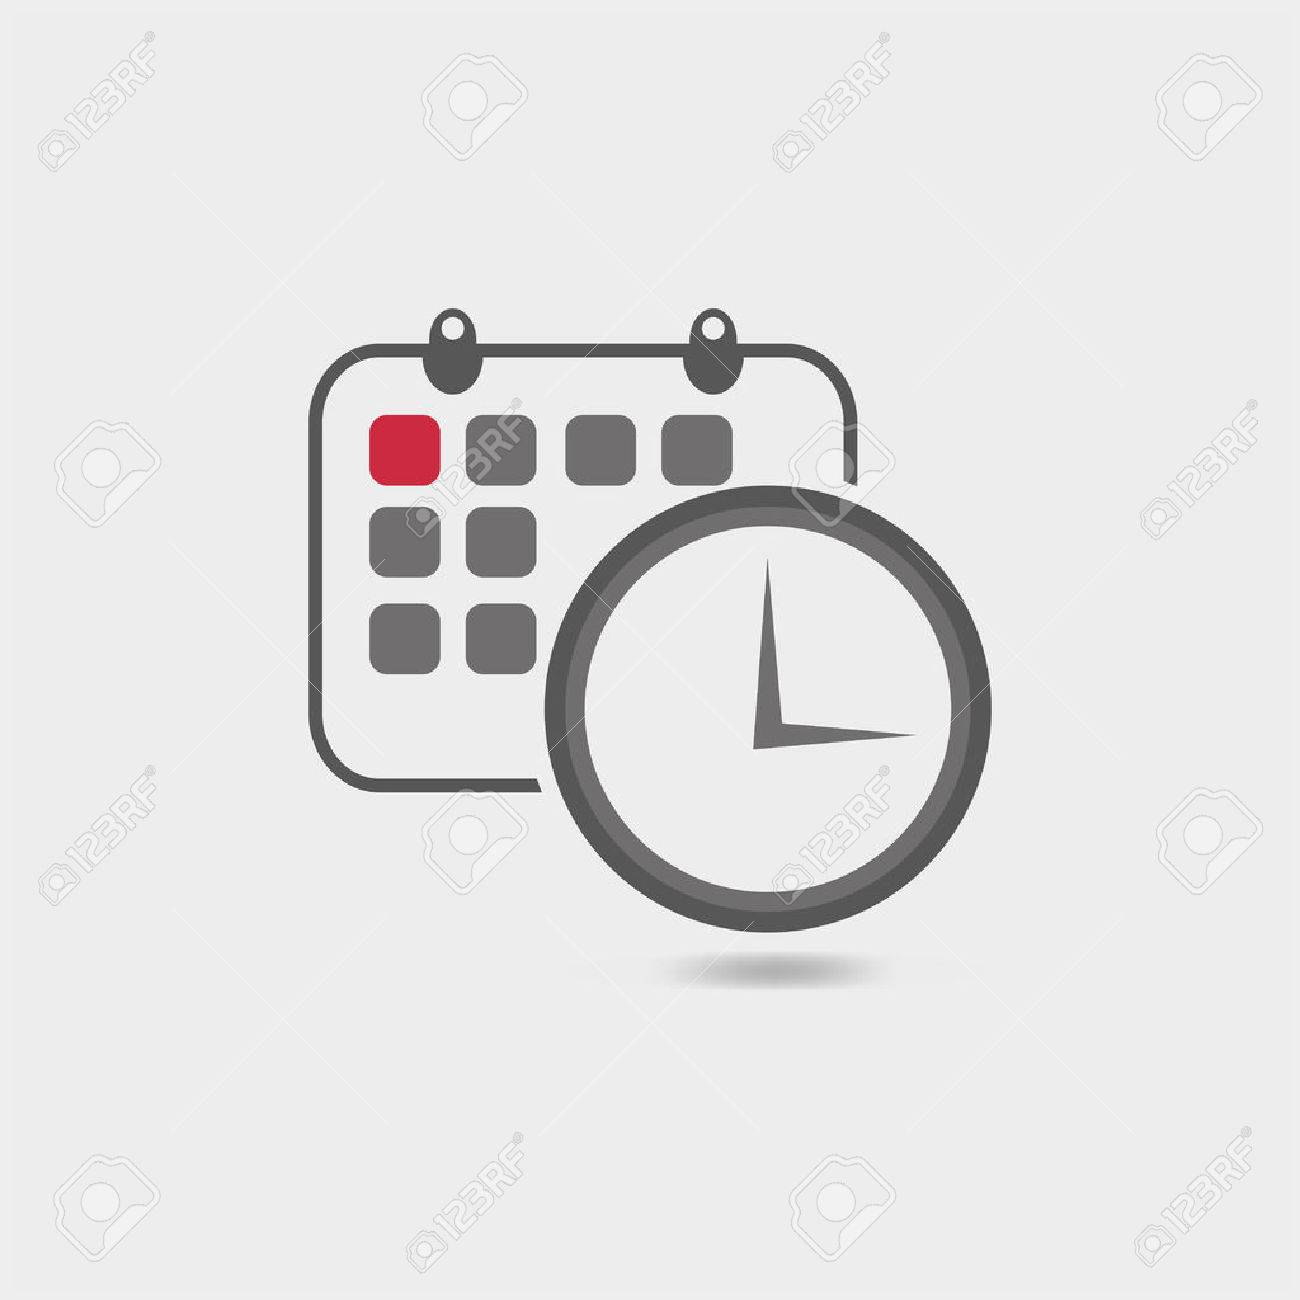 Vector illustration of timing with classic office clock and detailed calendar icon - 33673239